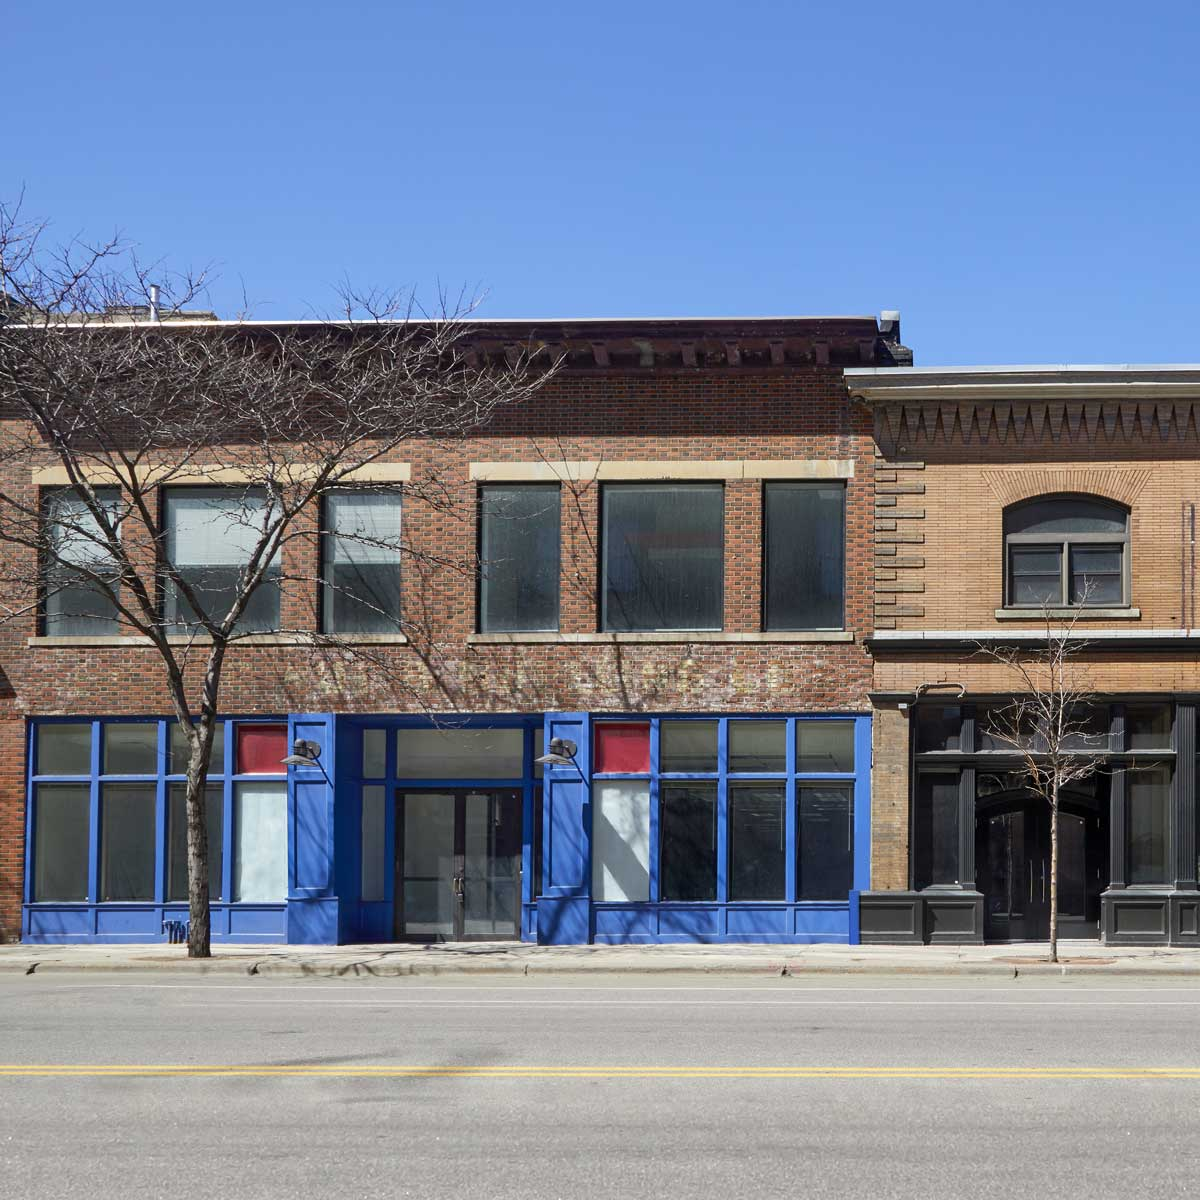 Empty storefronts on empty city street in northern city USA during Covid 19